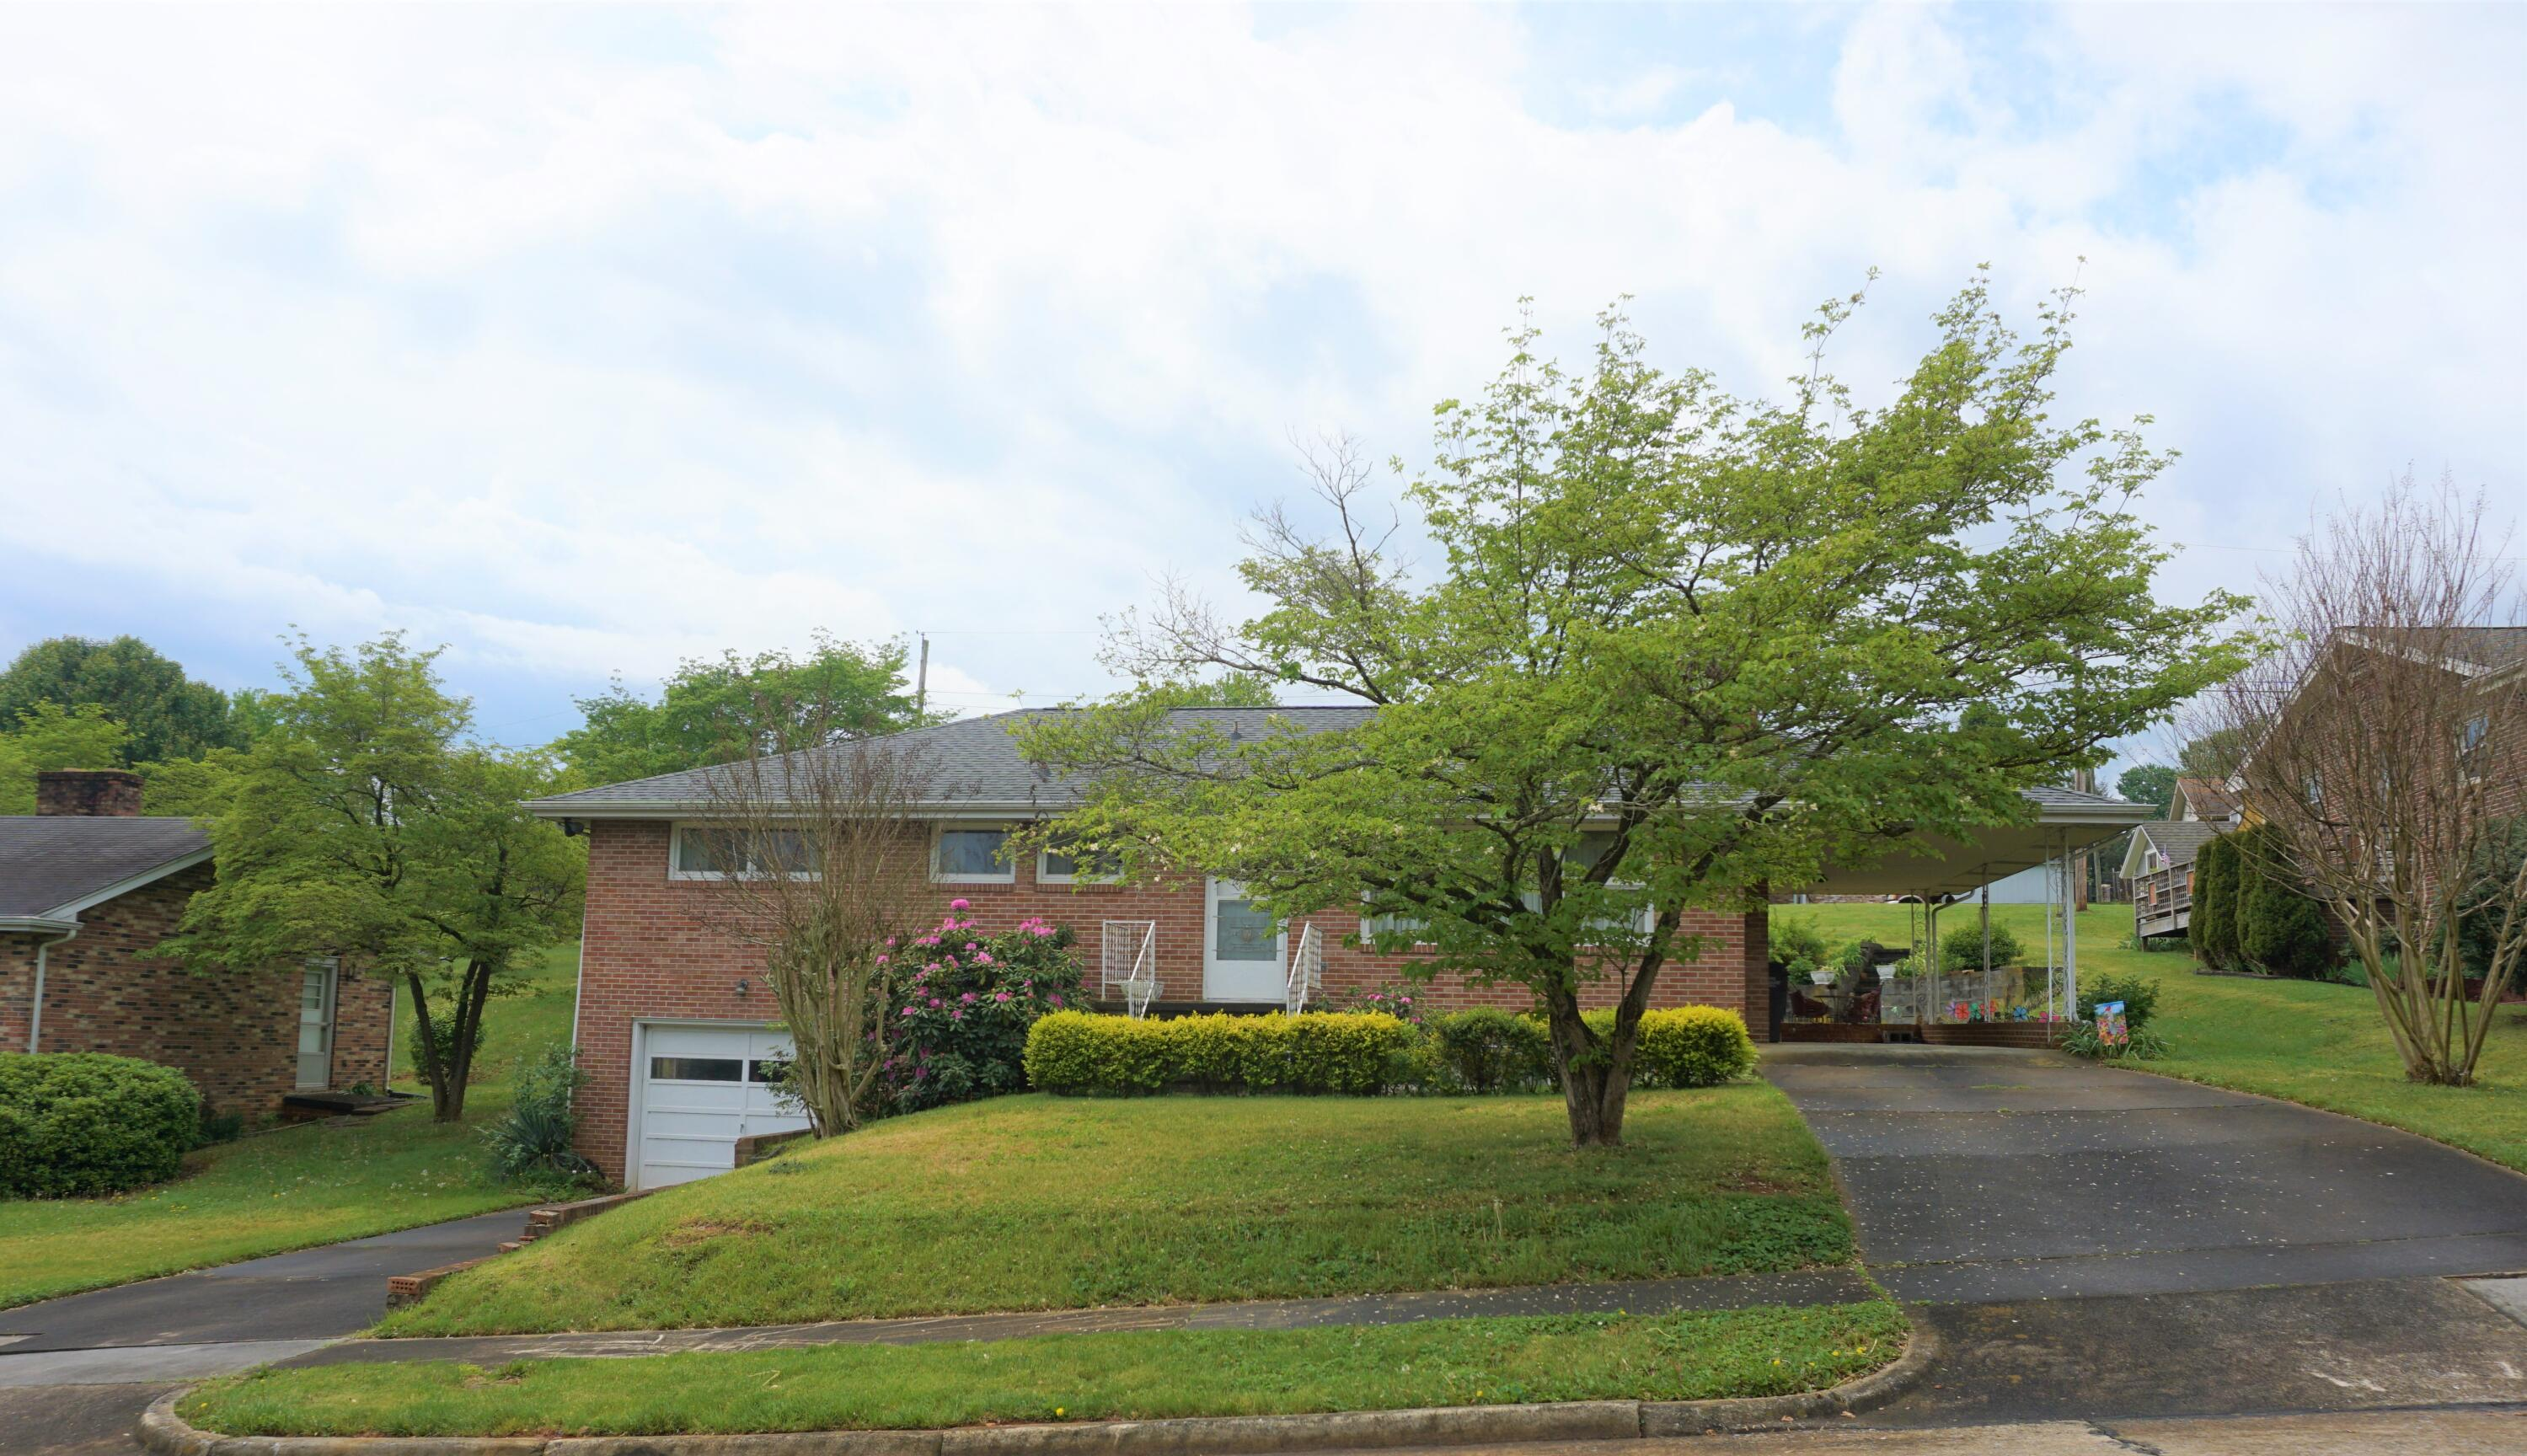 1017 Whippoorwill Lane, Kingsport, Tennessee 37660, 3 Bedrooms Bedrooms, ,2 BathroomsBathrooms,Single Family,For Sale,1017 Whippoorwill Lane,1,9921886